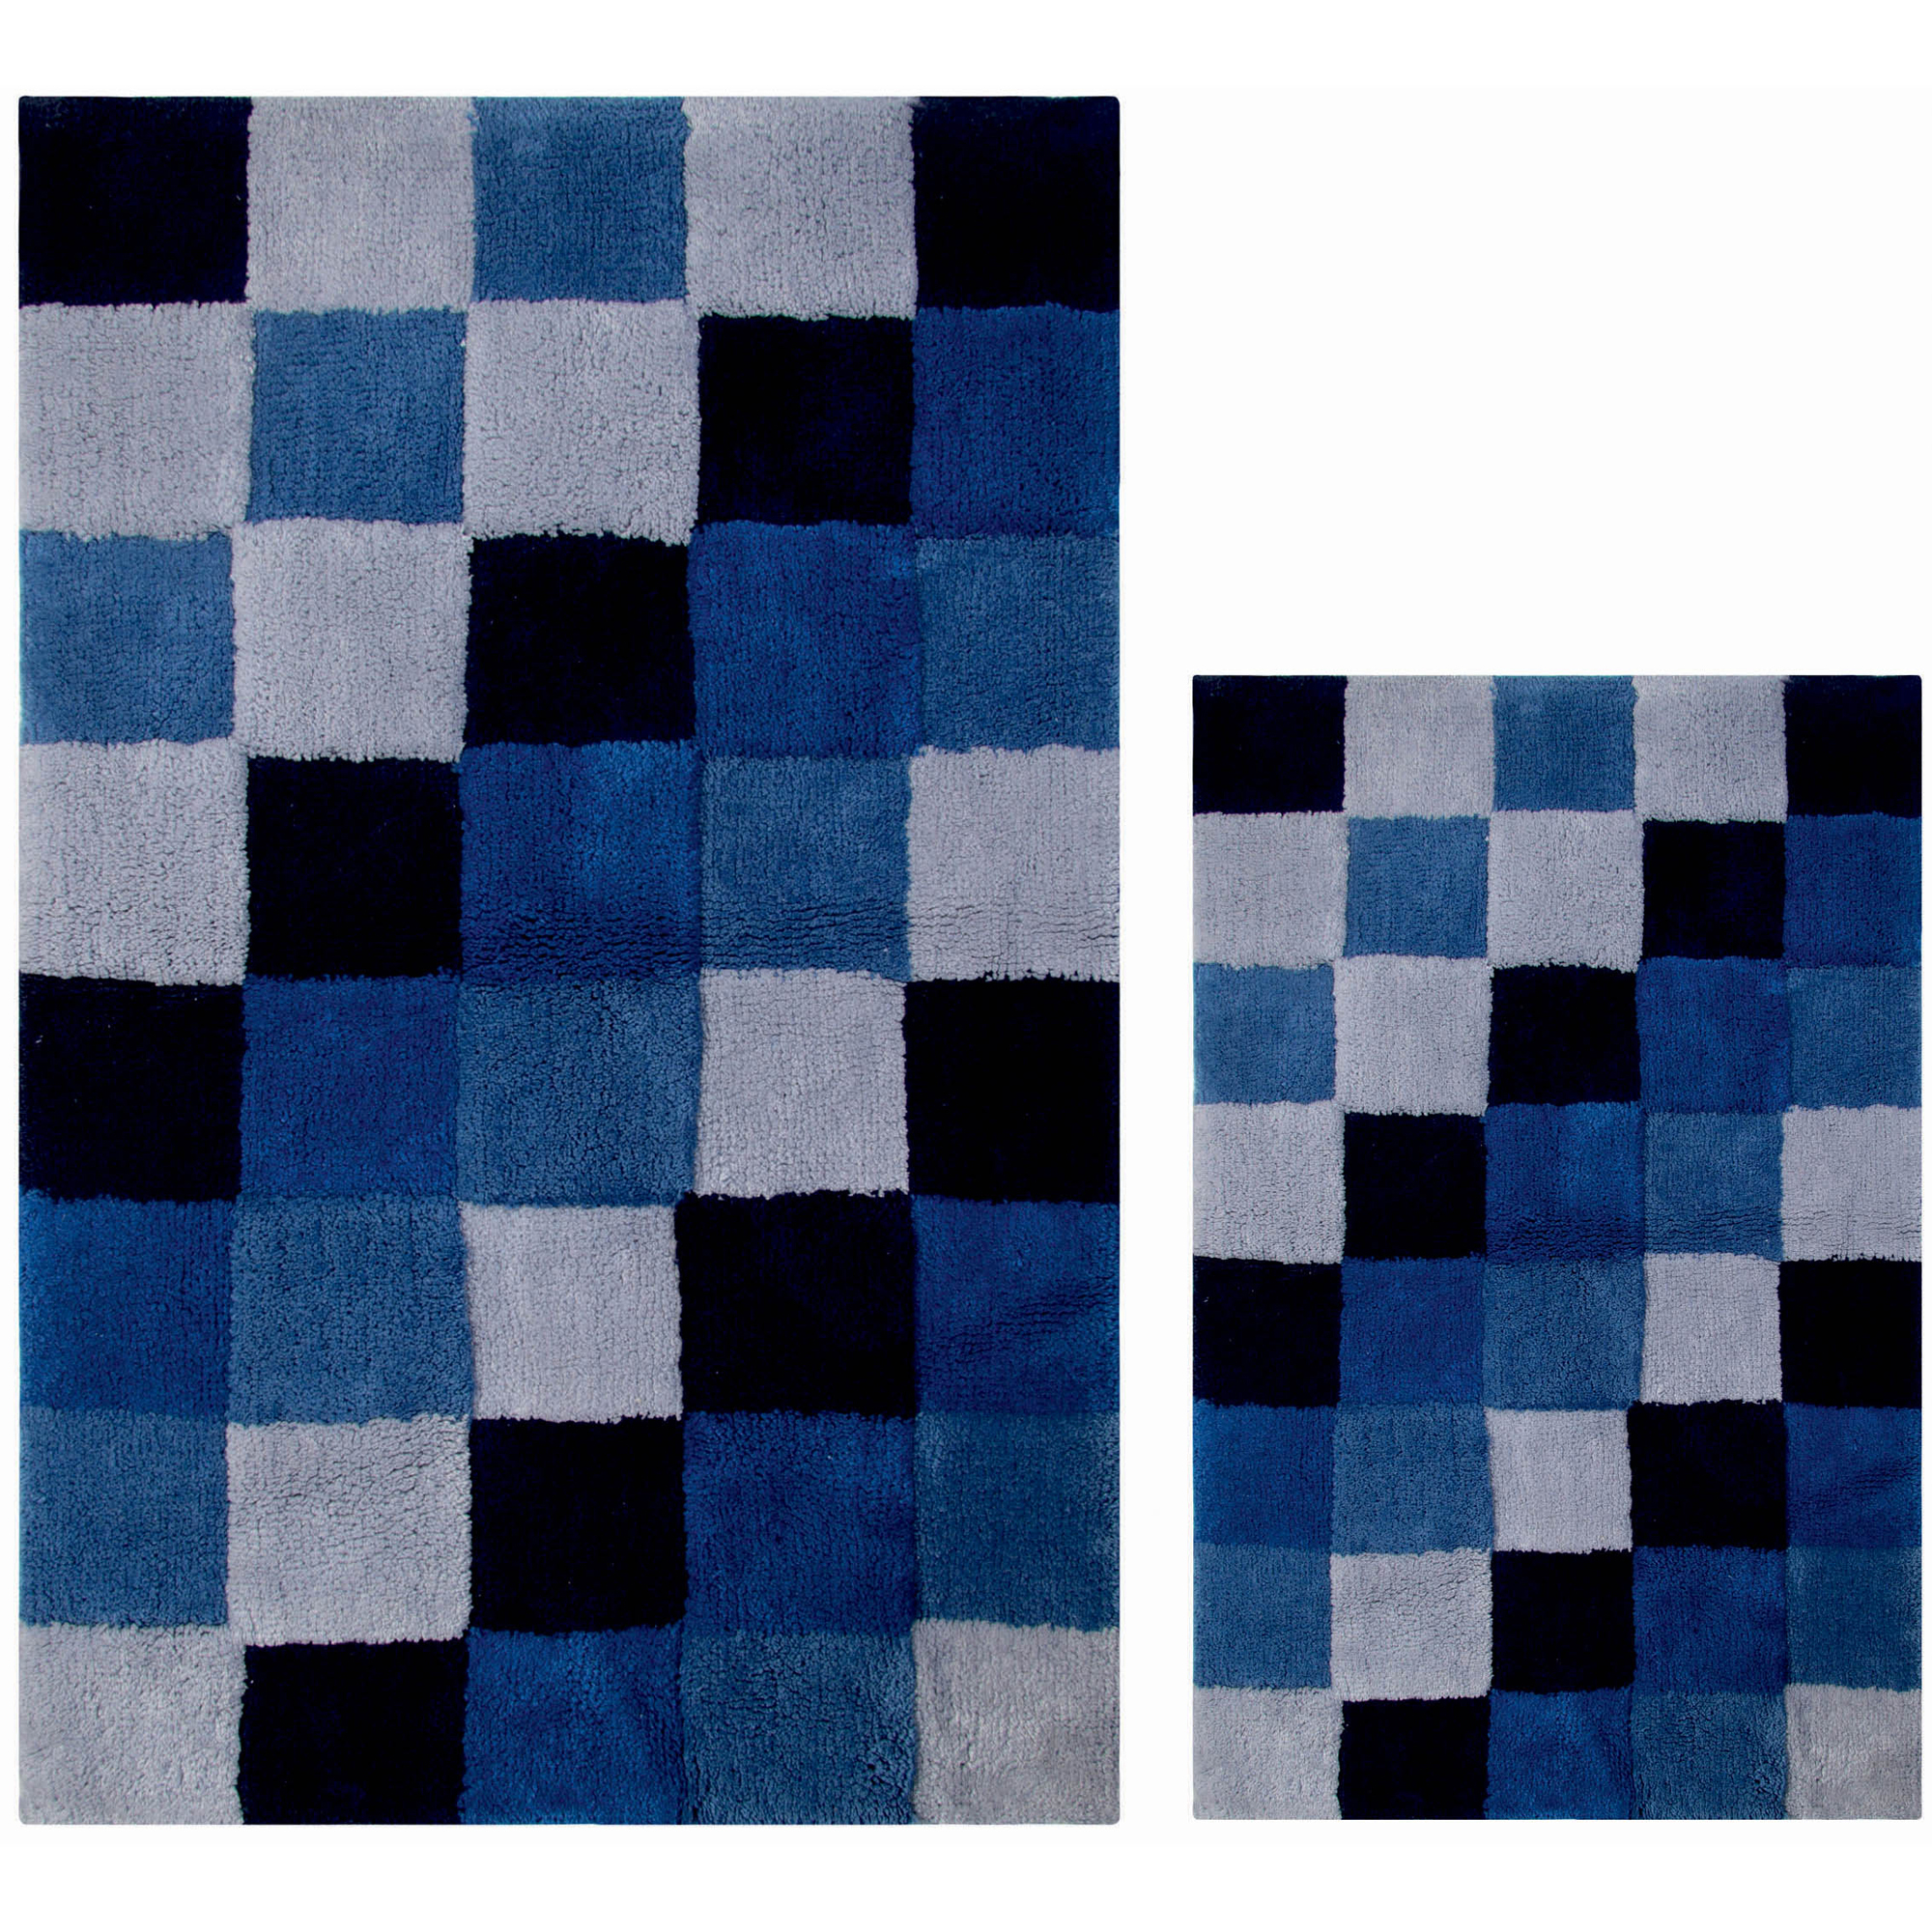 Tiles 100 Percent Cotton Bath Rug and 2-Piece Rug Set